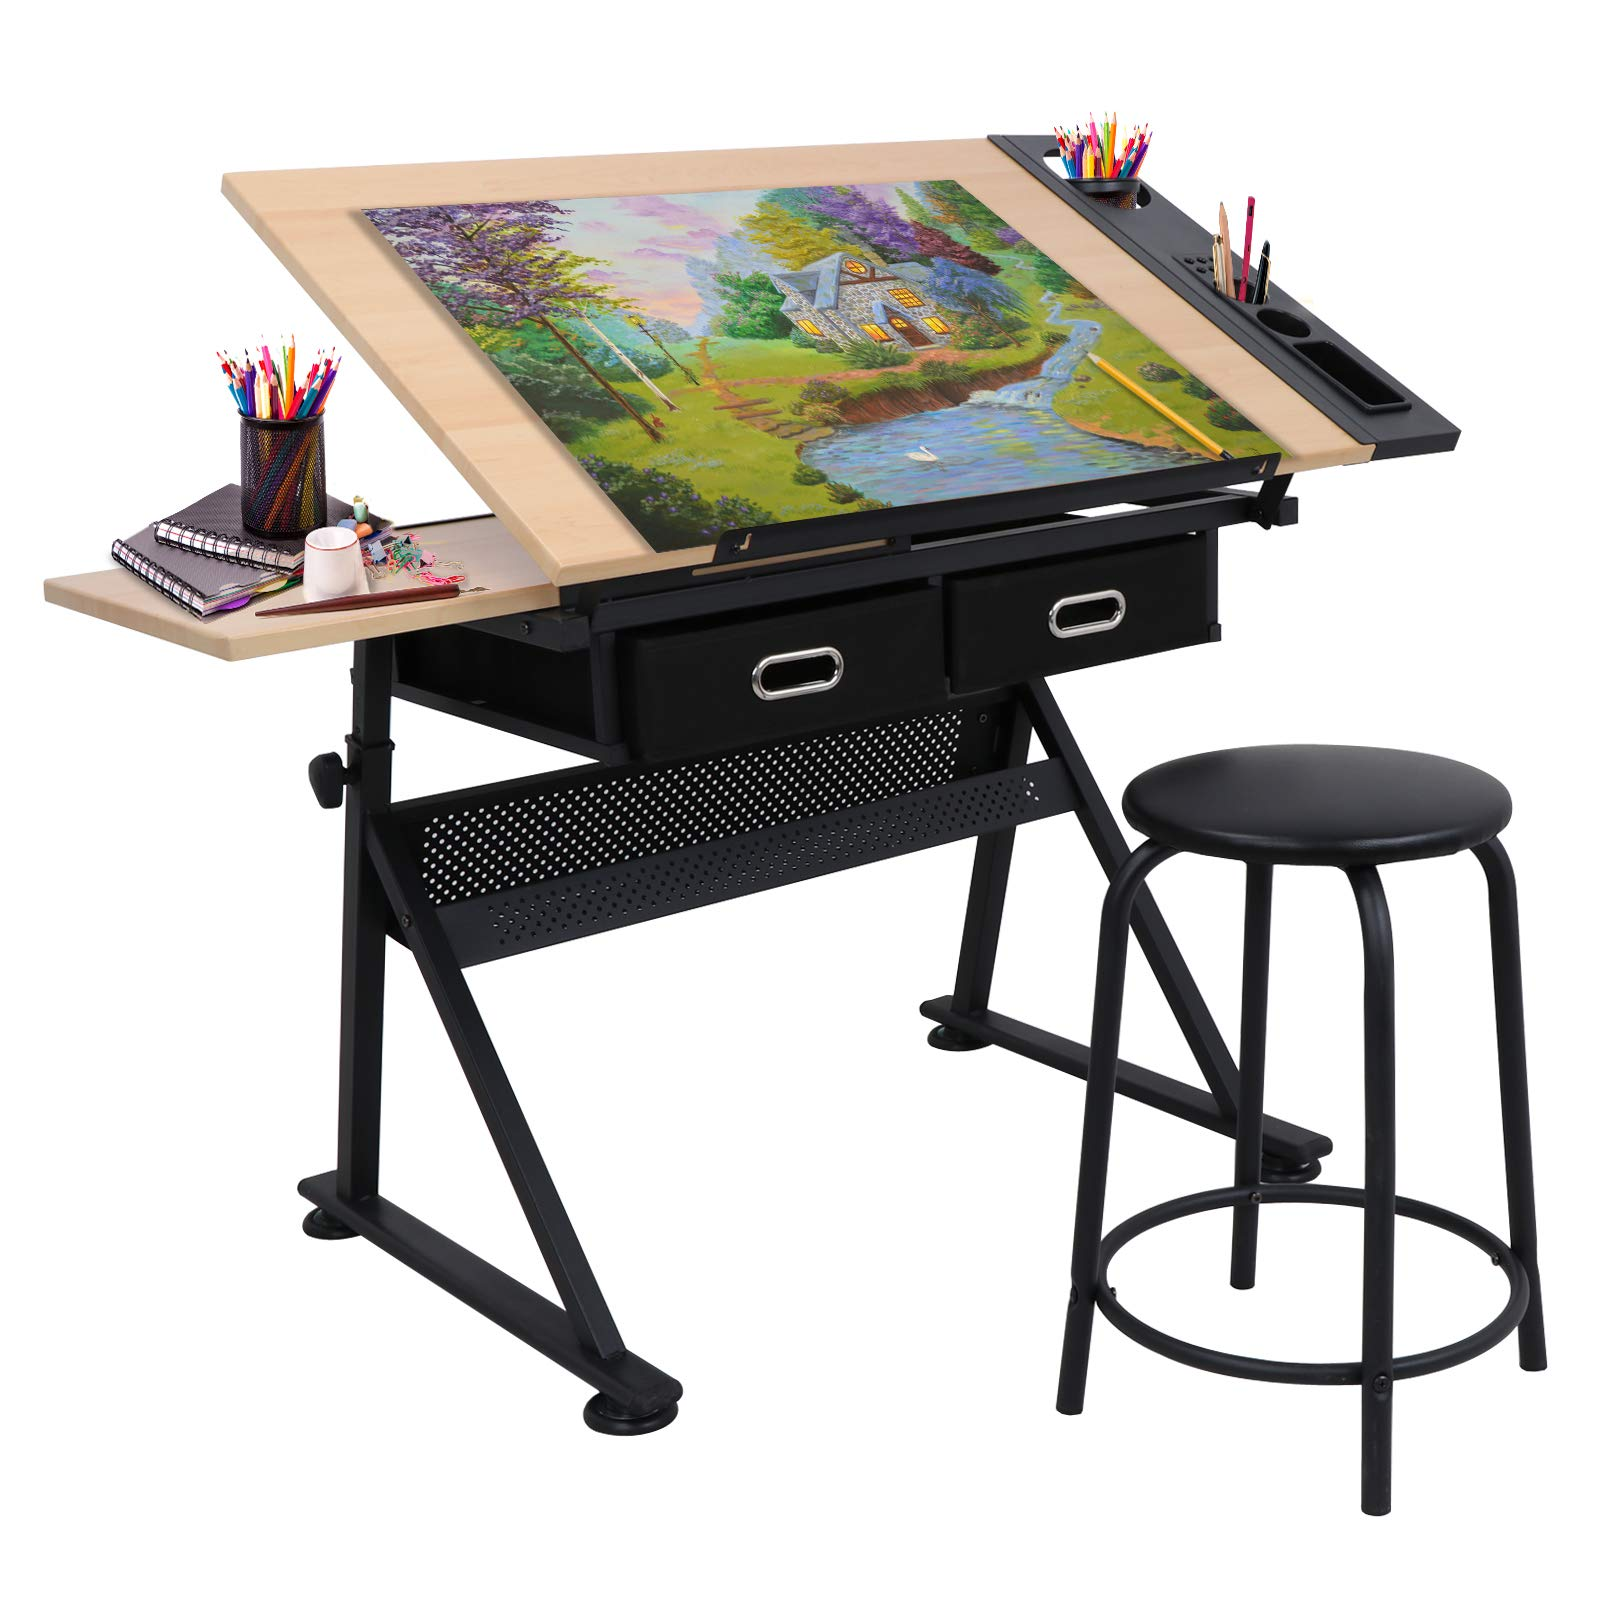 Adjustable Height Drafting Desk Drawing Table Tiltable Tabletop for for Reading, Writing Art Craft w/Stool and Drawers (#1) by Nova Microdermabrasion